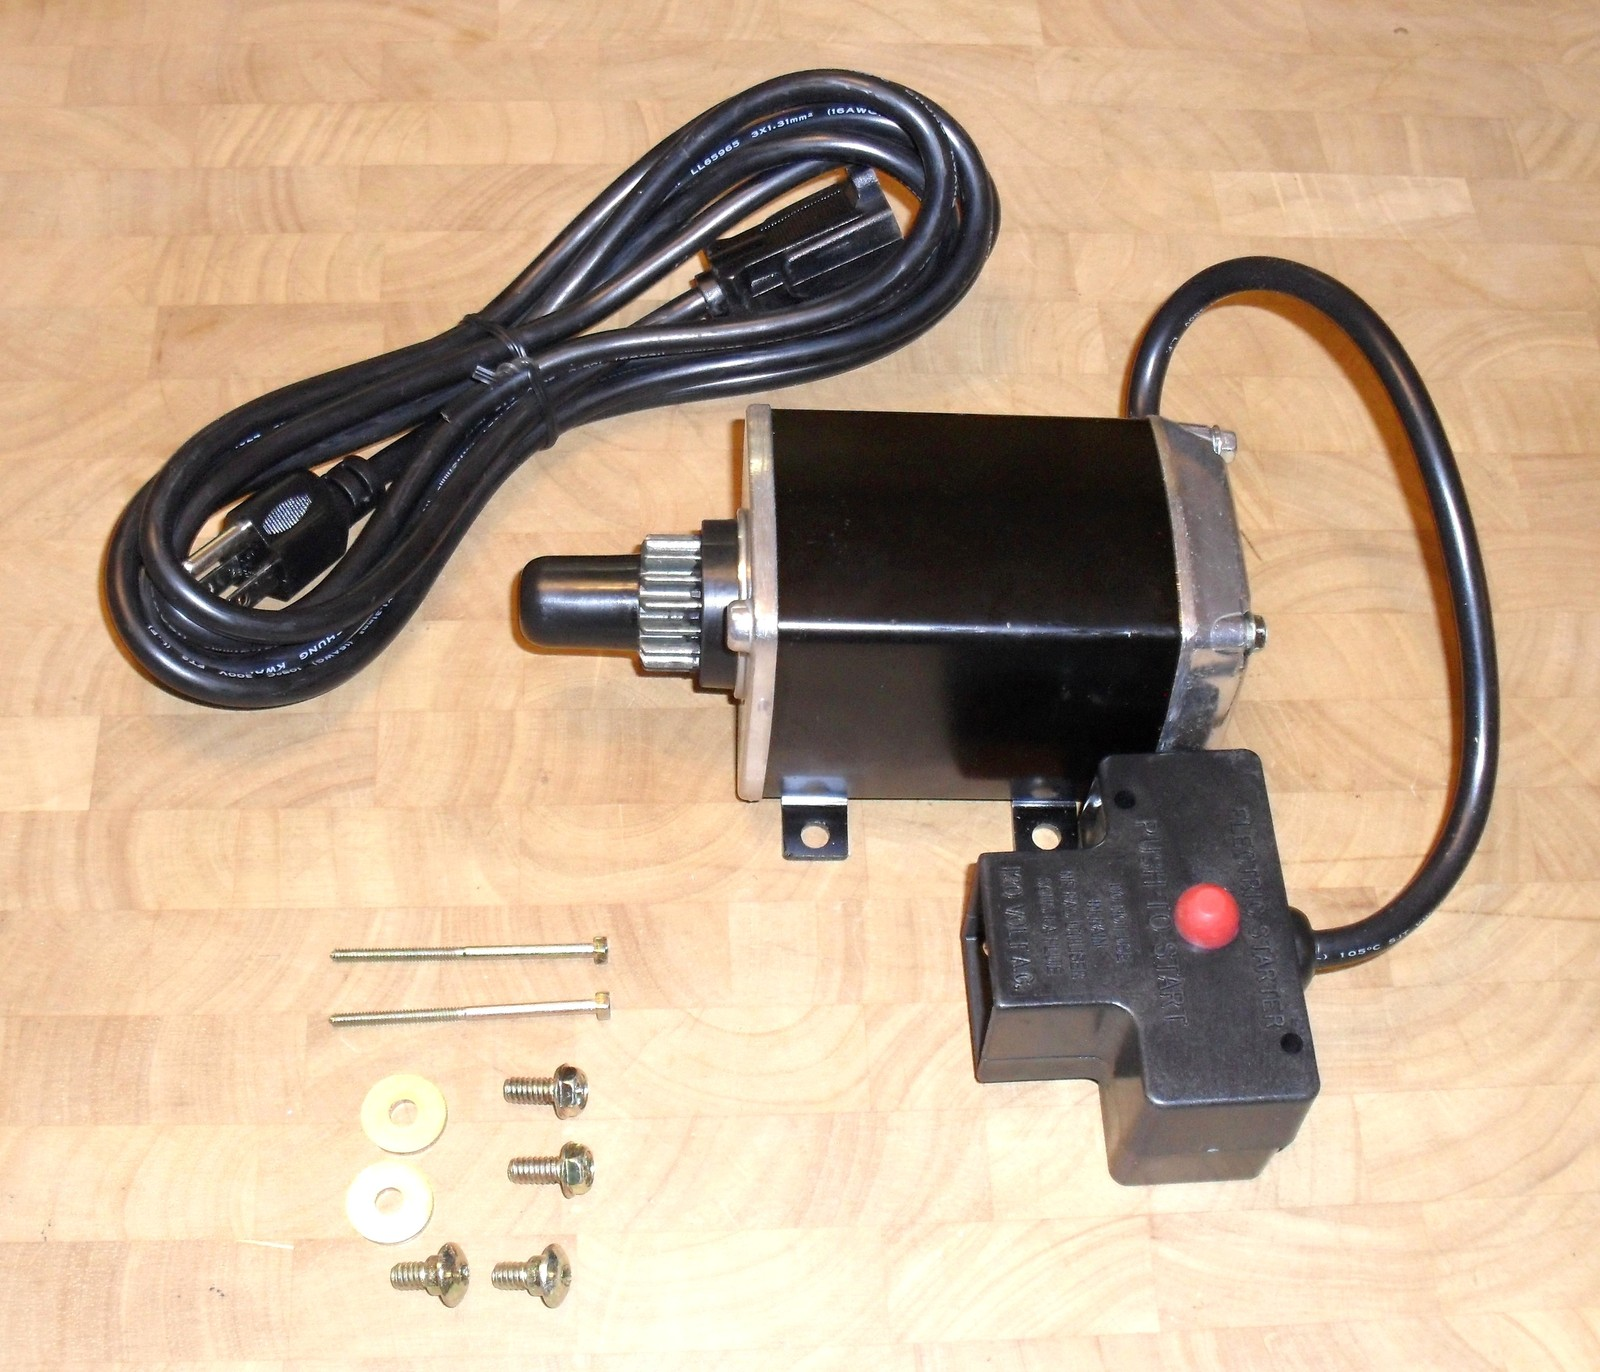 Snowblower starter for Tecumseh Snow King, HM70, HM80, HMSK80, VH60, HMSK85